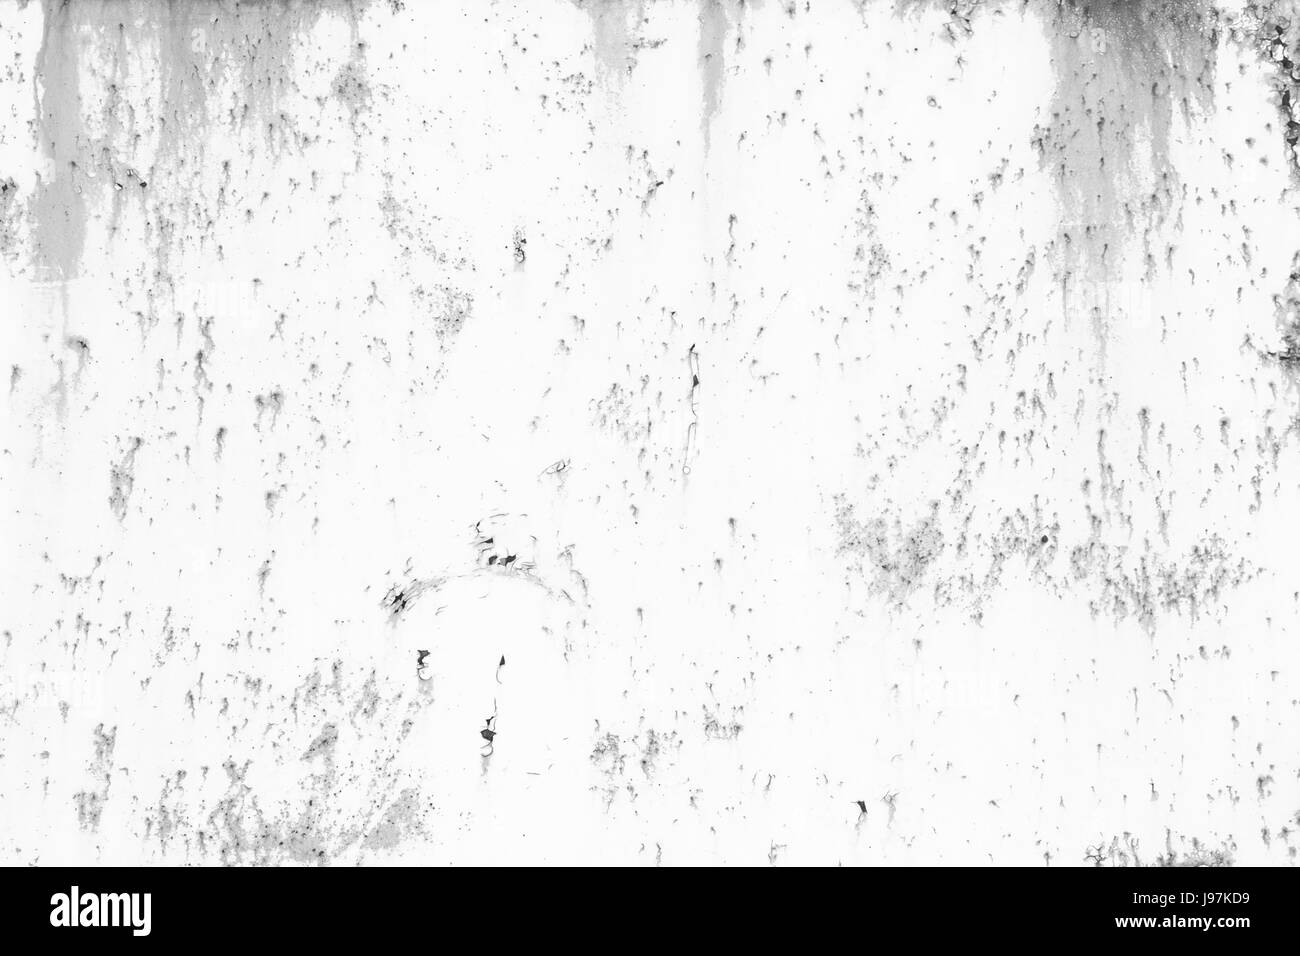 Rusted Metal Industrial Scratched Background Grunge Black